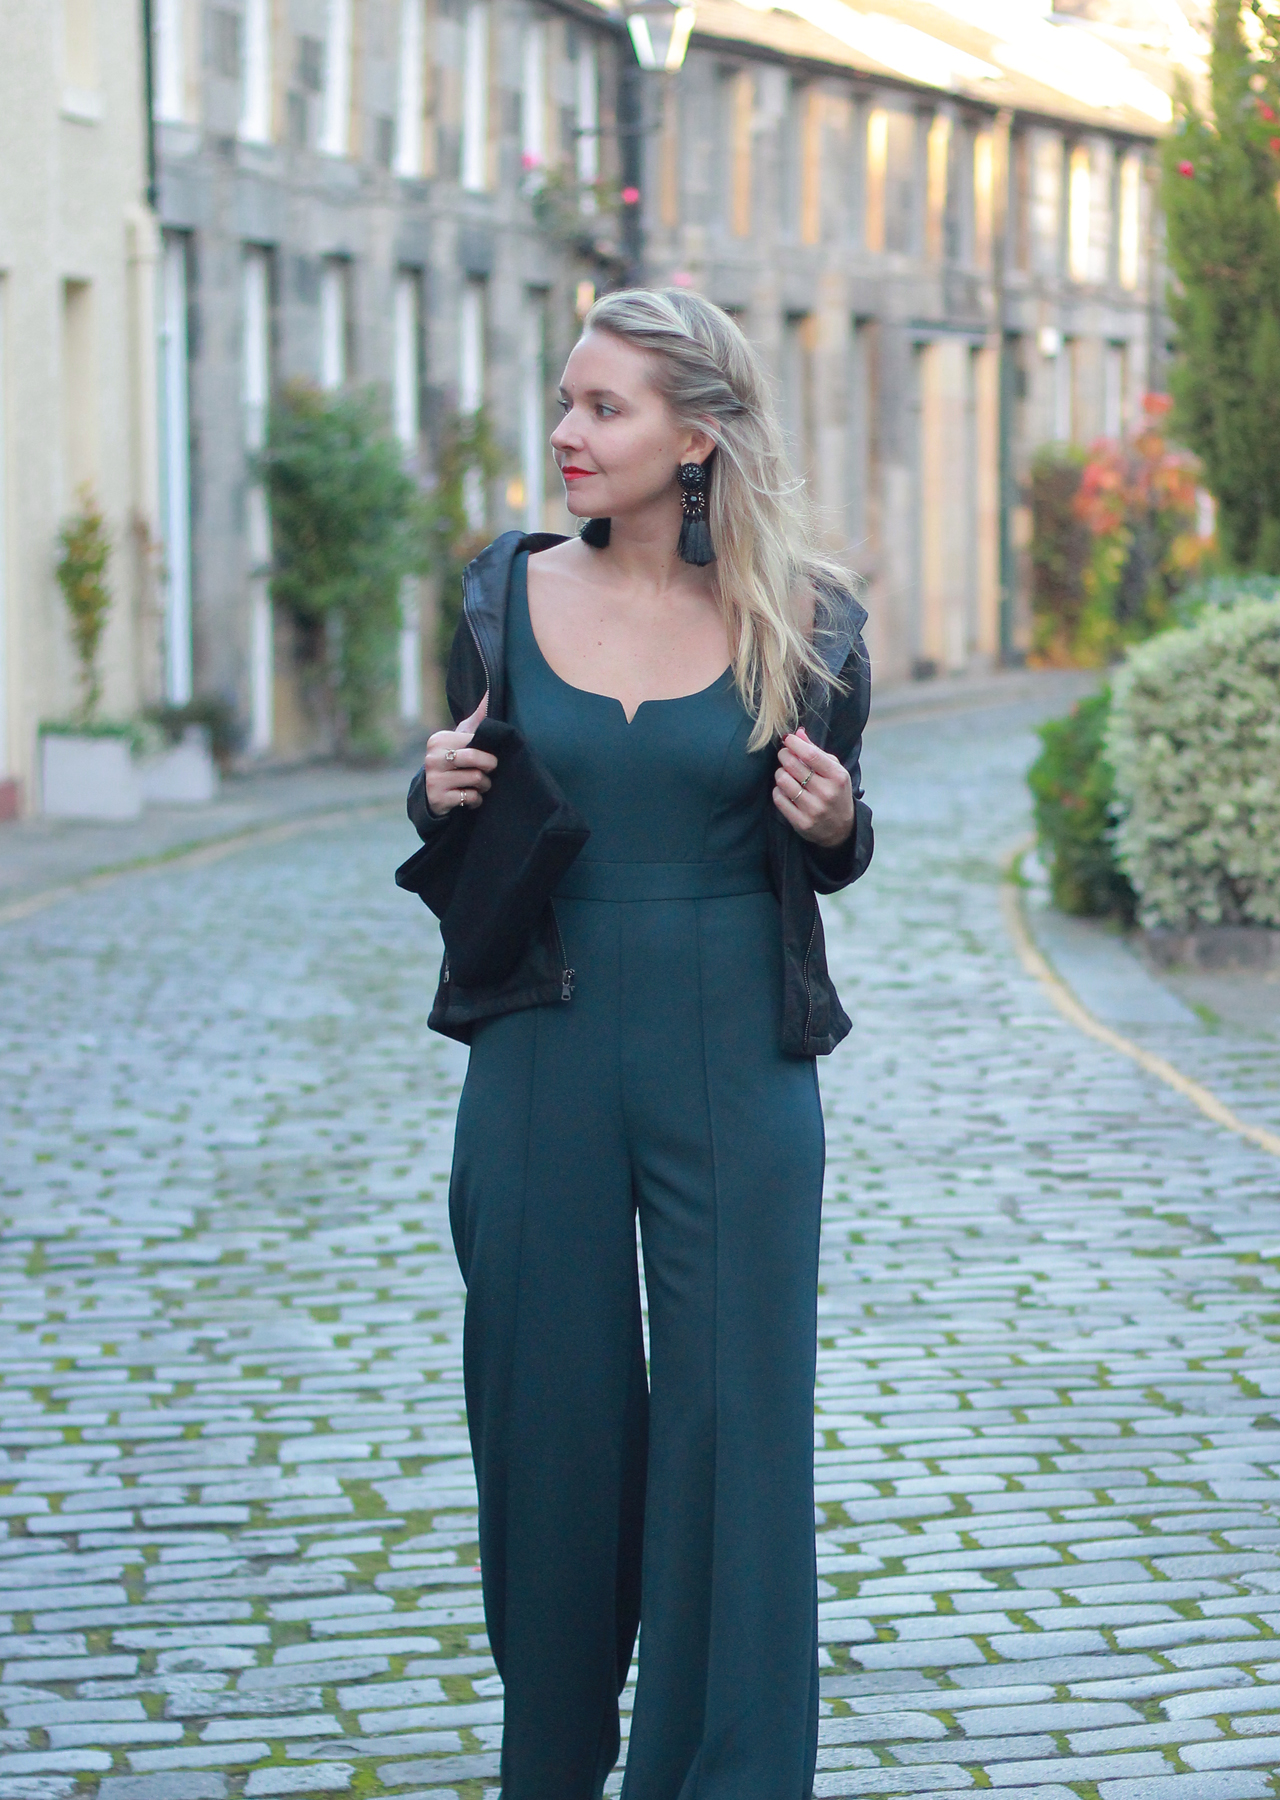 The Steele Maiden: Emerald Green Jumpsuit - Holiday Party Style